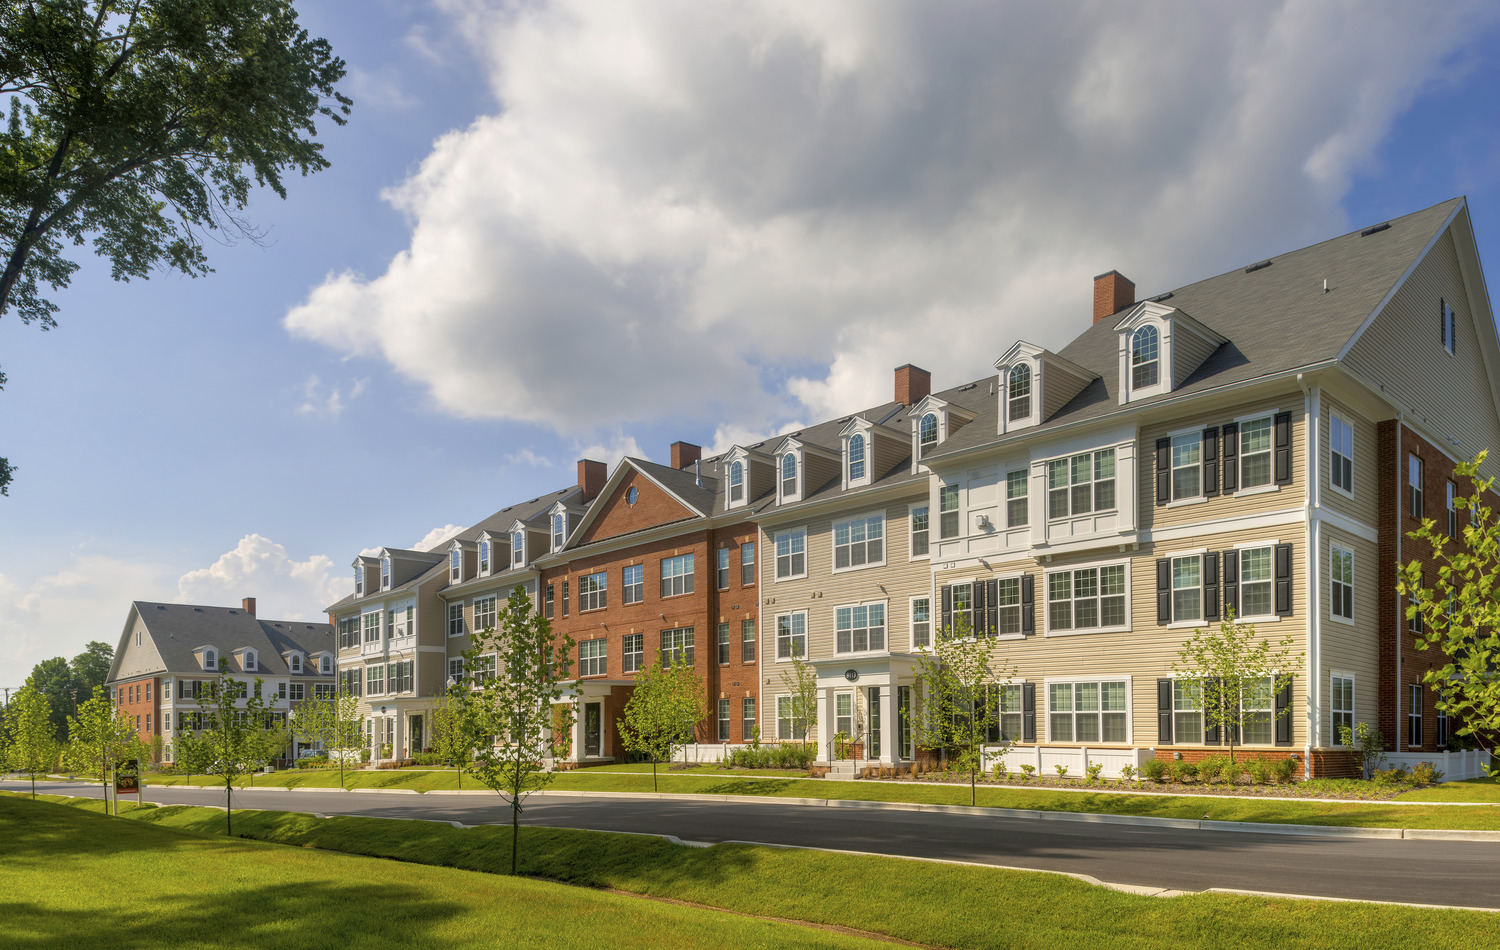 CBG builds Creekstone Village Apartments, a 193-Unit Affordable Garden-Style Apartment Community in Pasadena, MD